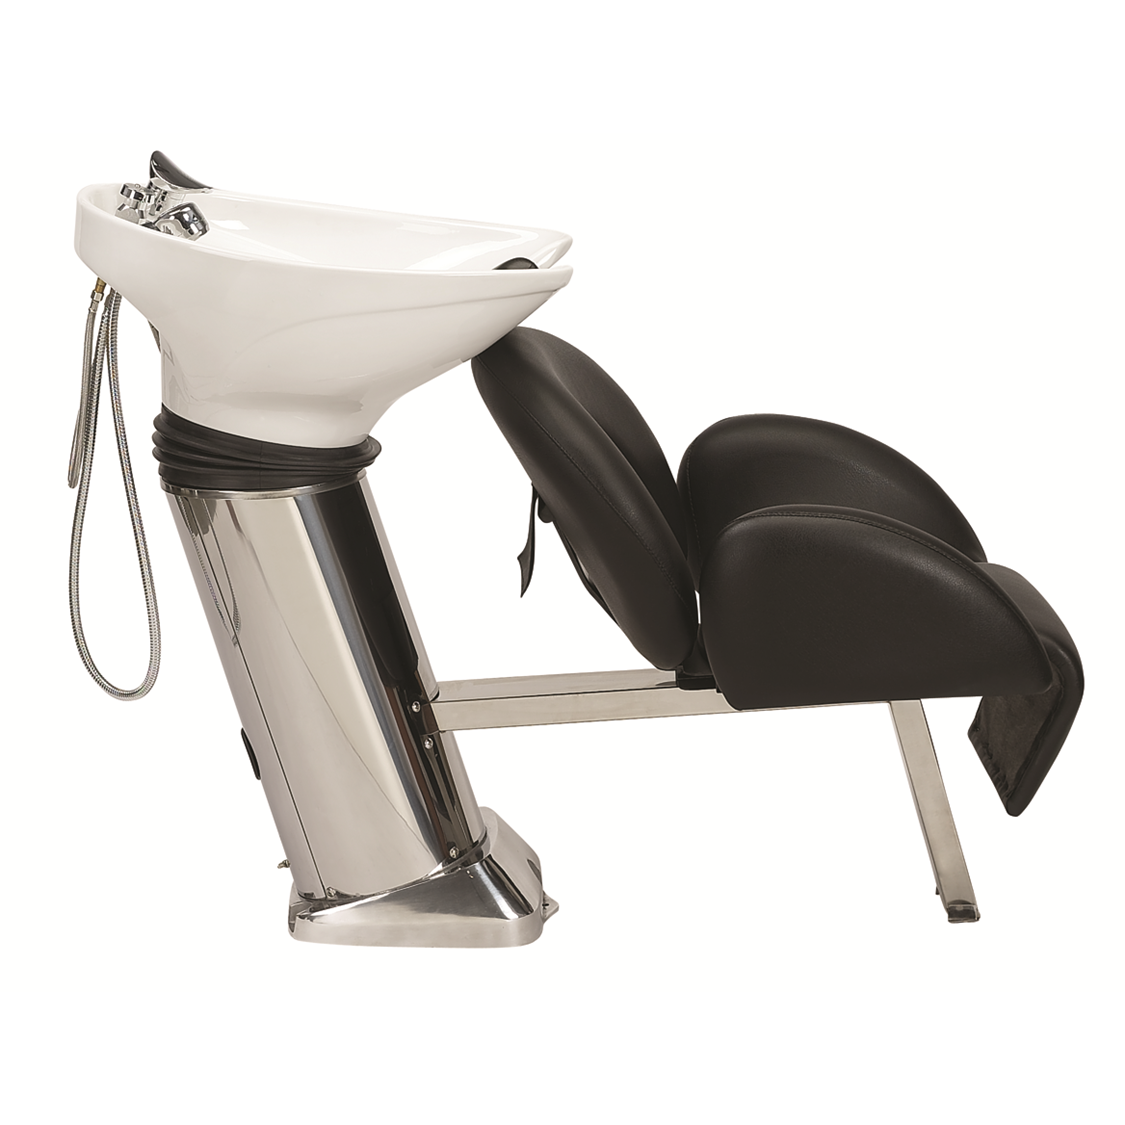 40B Shampoo System, White - Garfield Commercial Enterprises Salon Equipment Spa Furniture Barber Chair Luxury